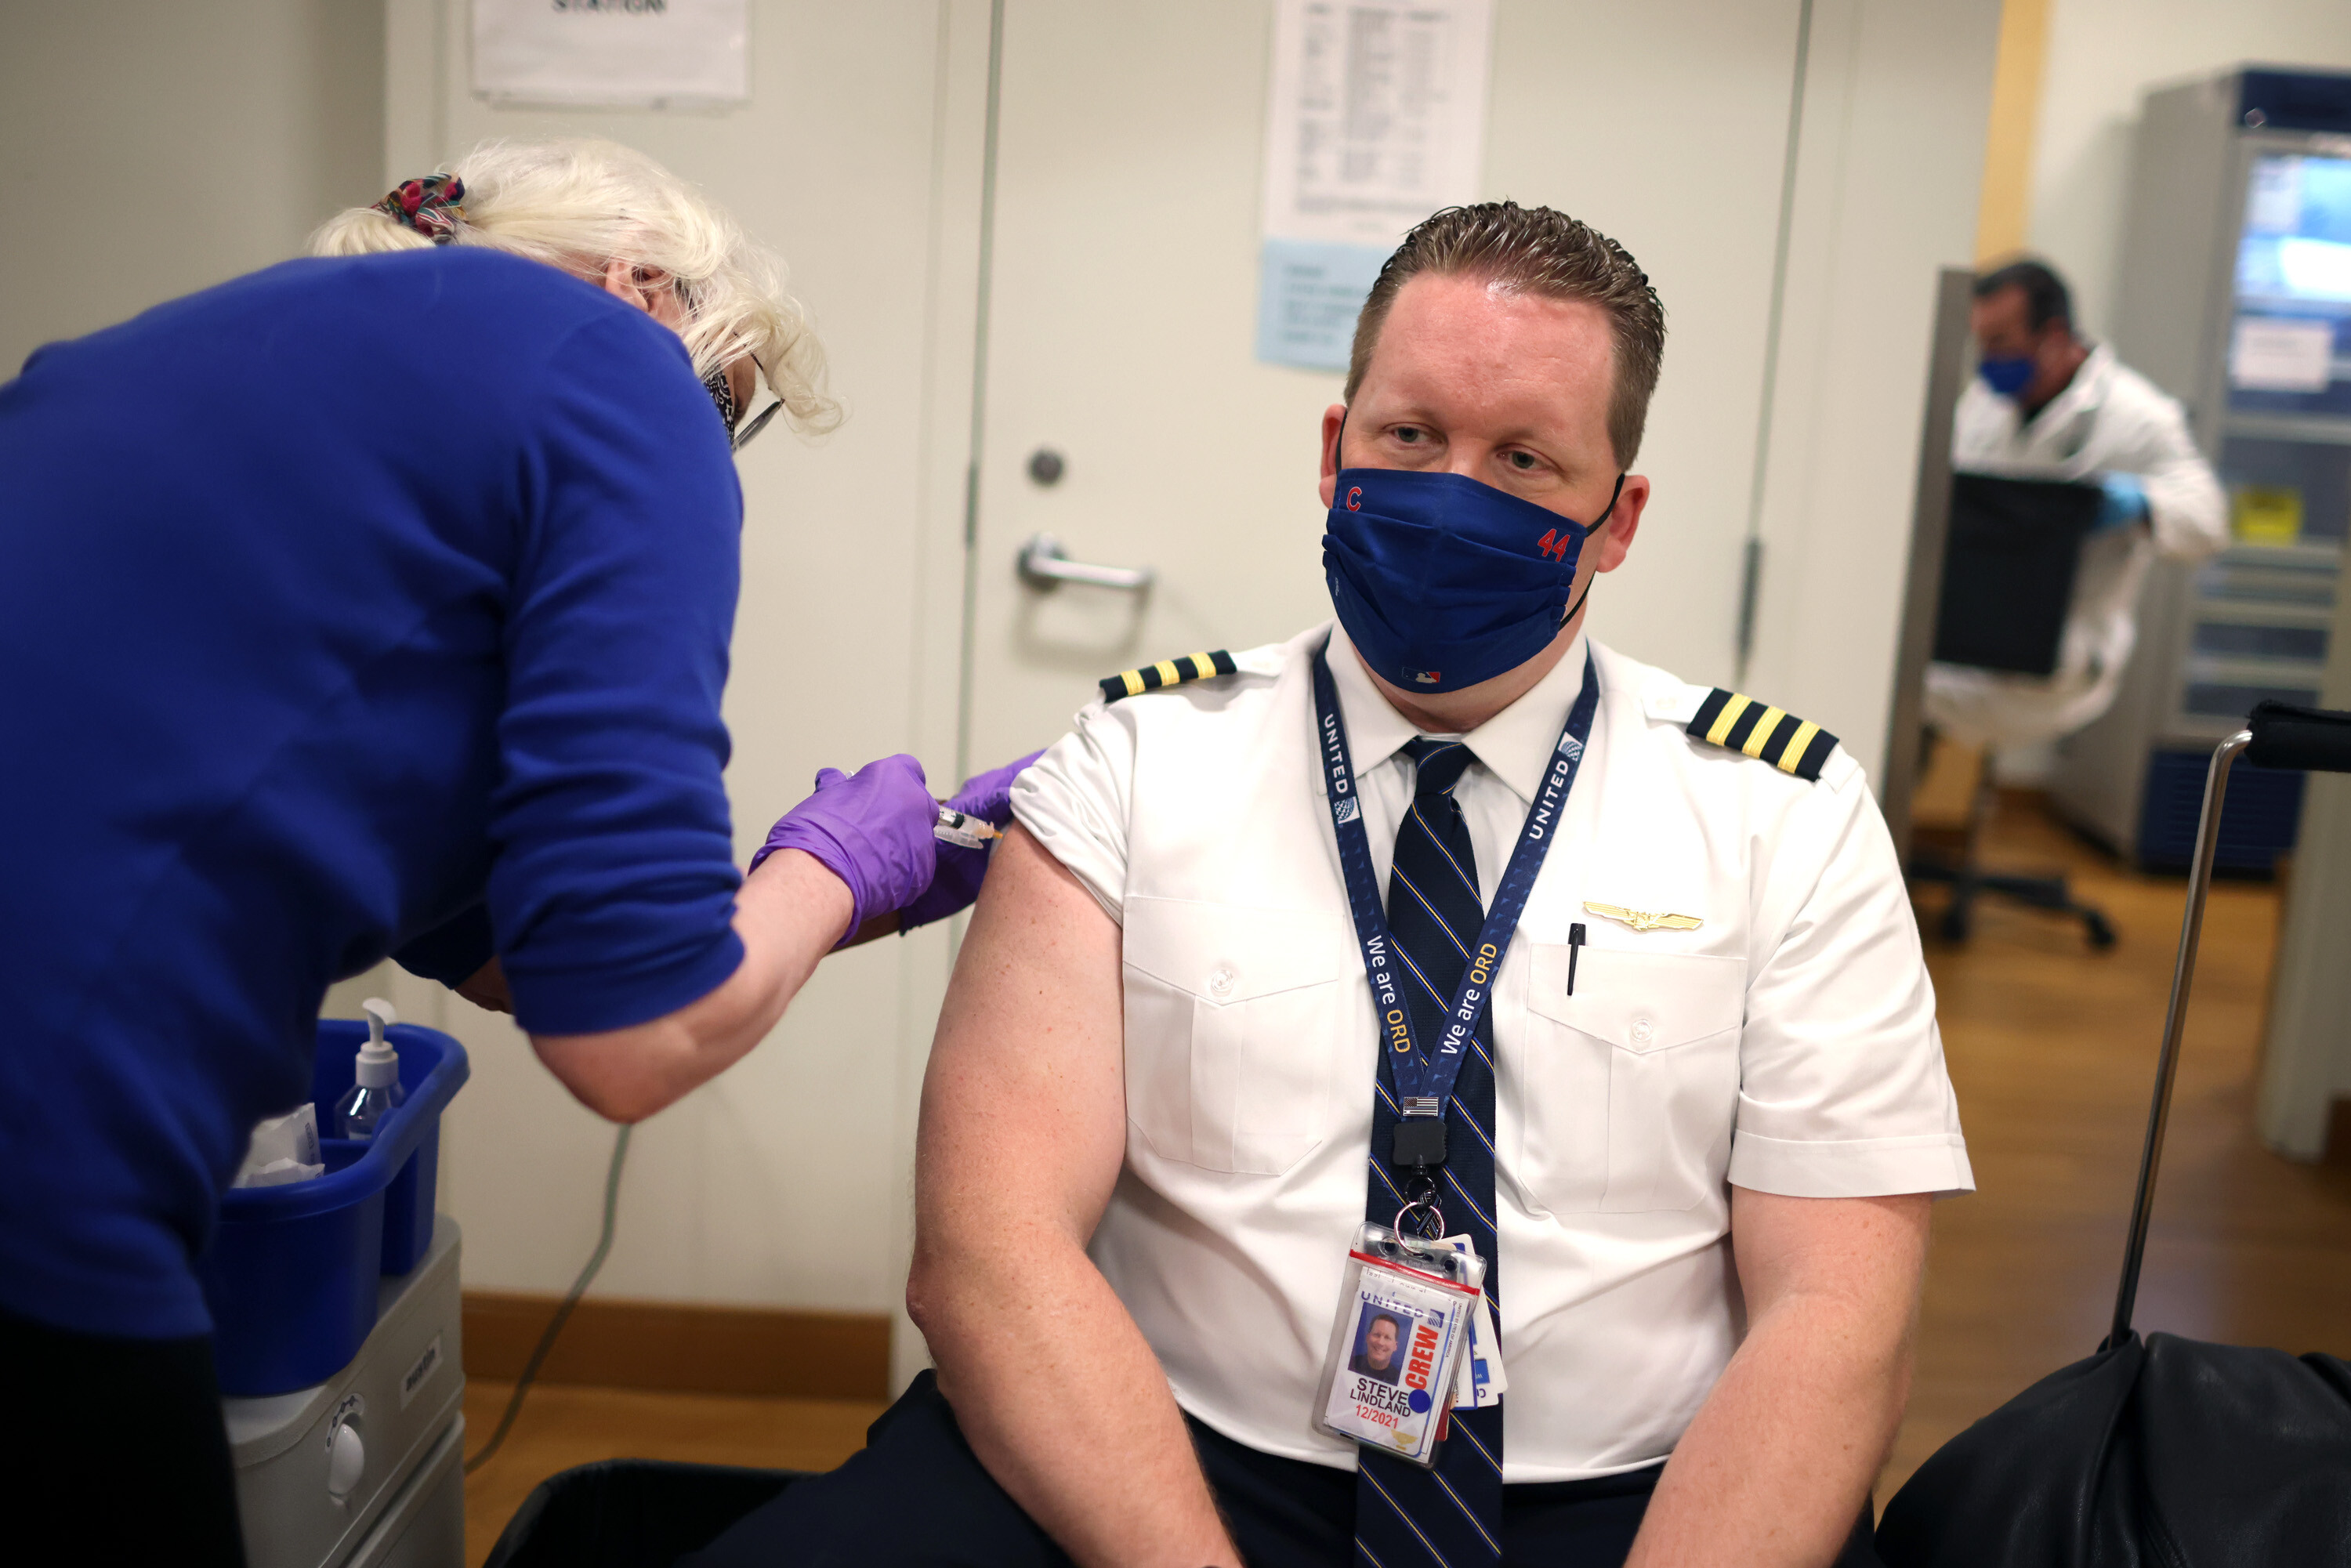 Almost all United employees complied with the vaccine mandate